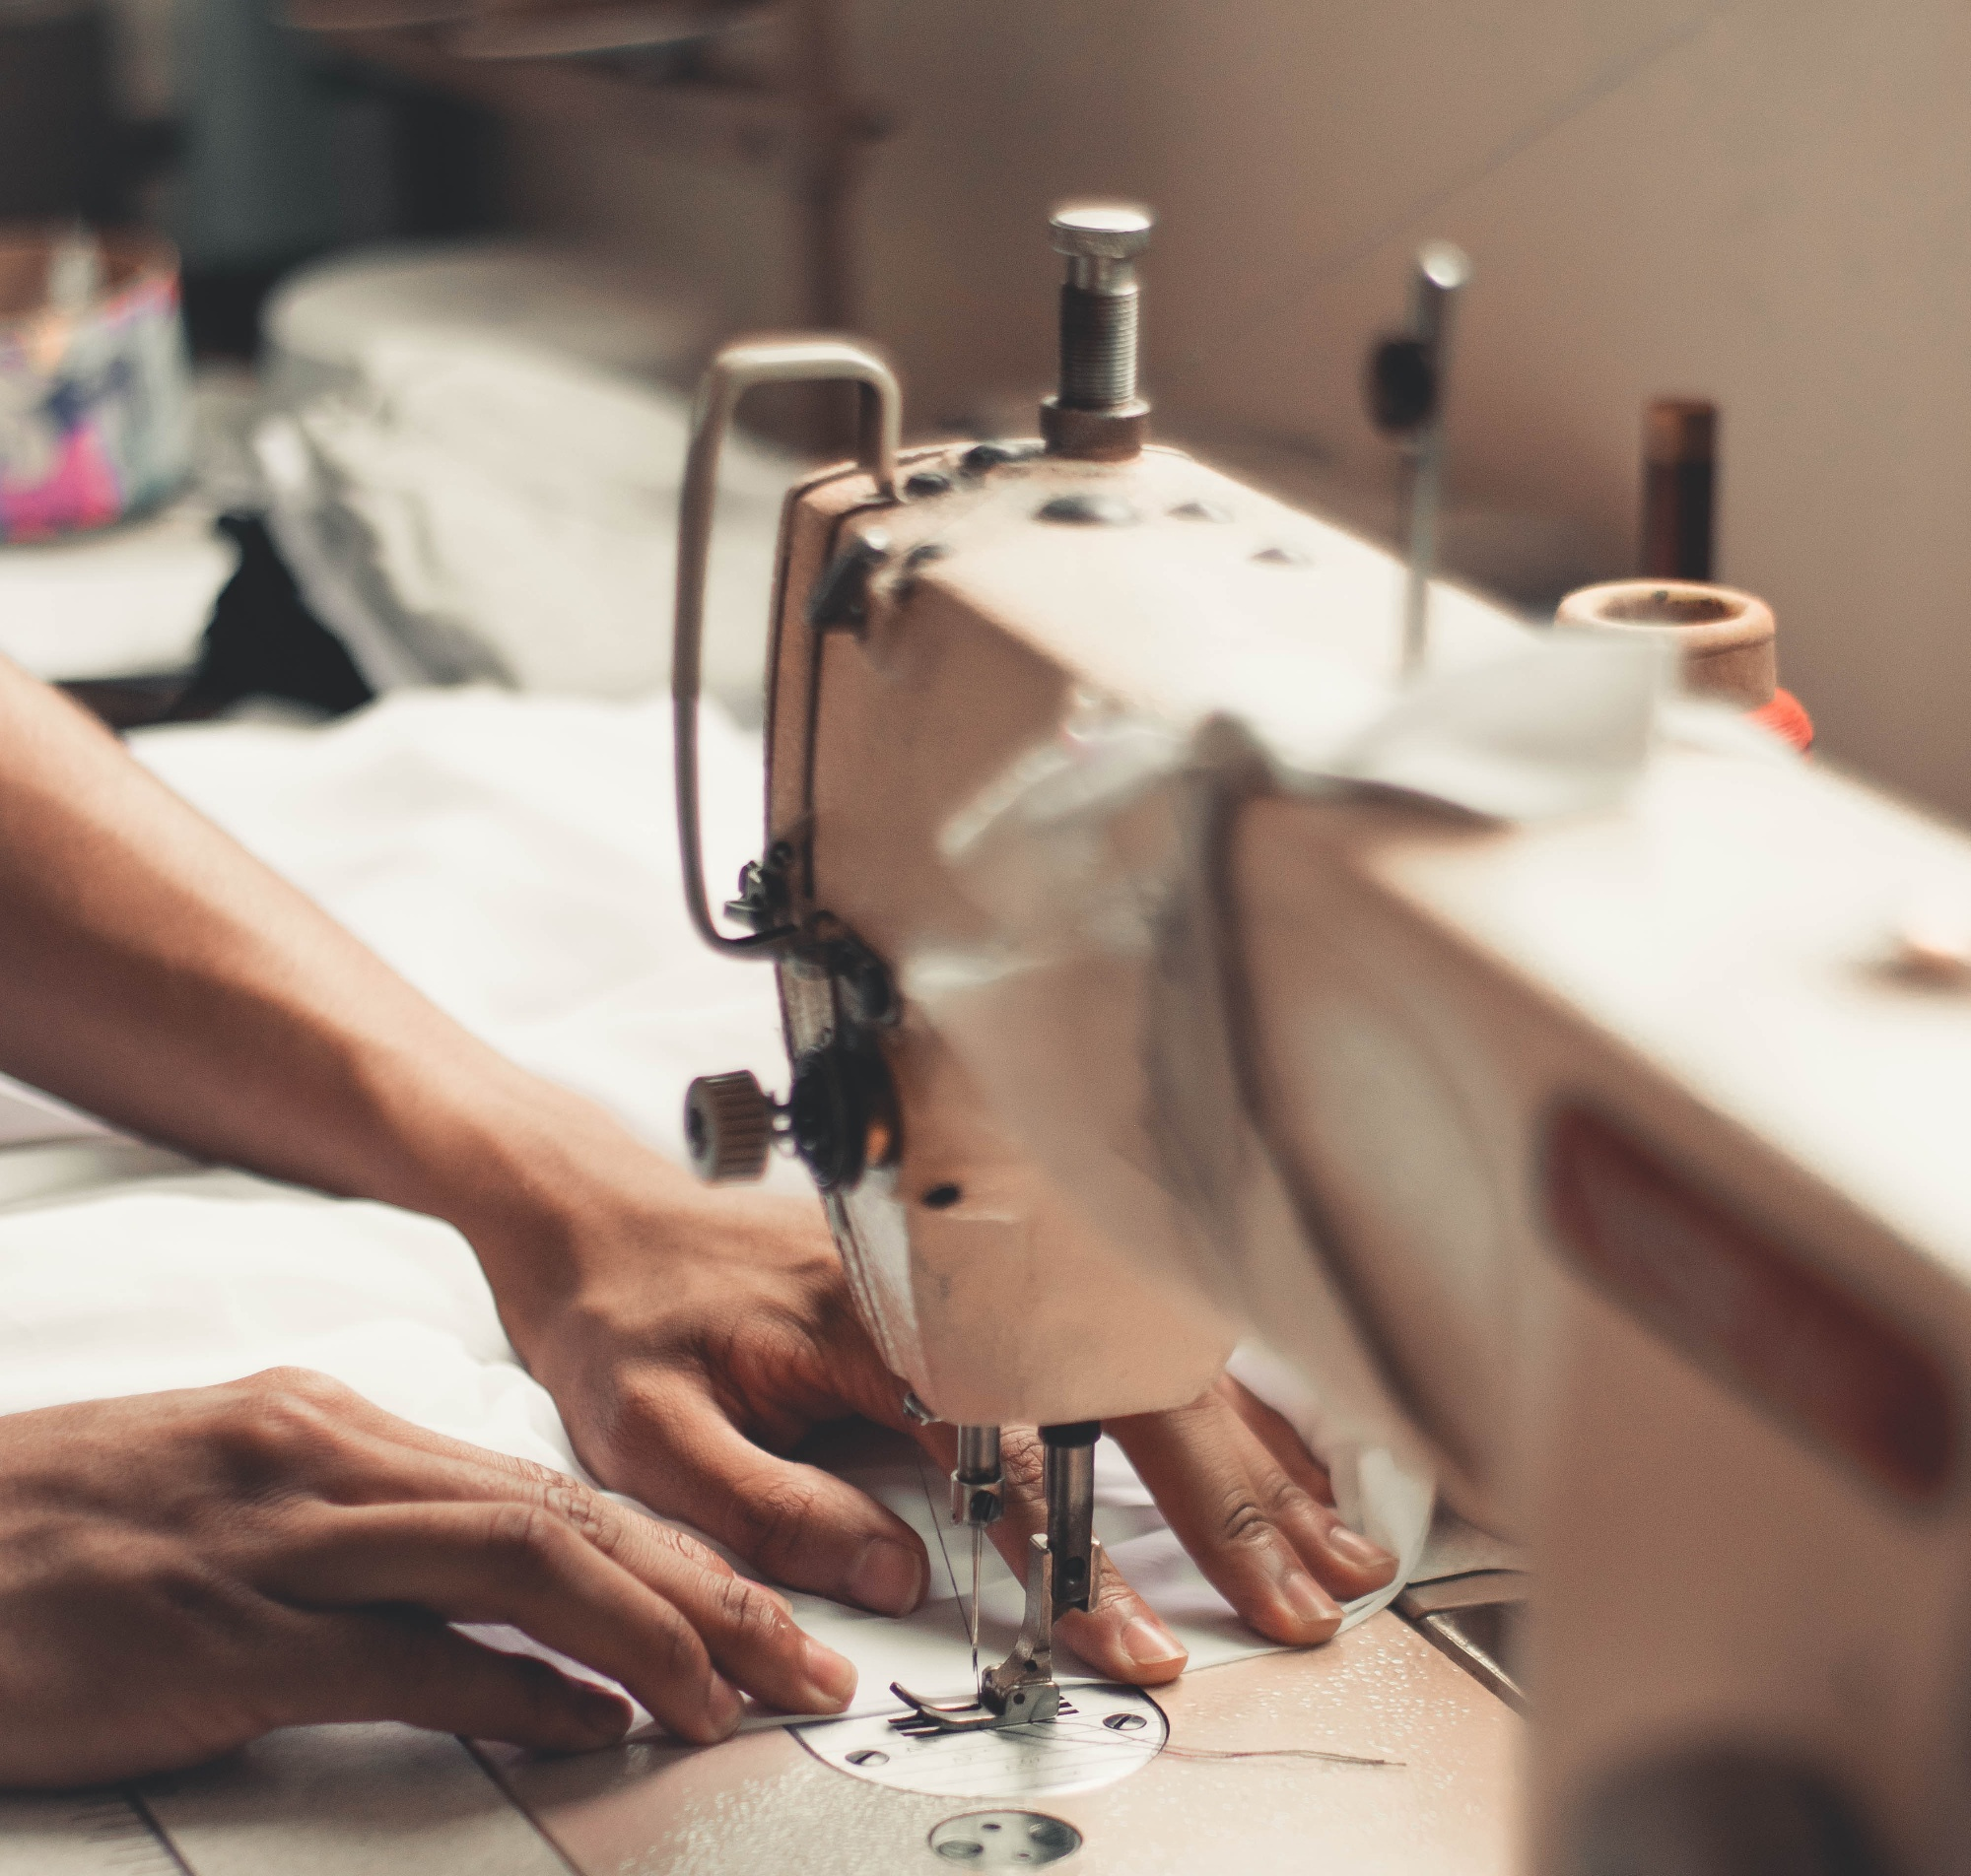 MakersValley Blog | Made-to-Order Fashion Tackles the Industry's Biggest Sustainability Issue